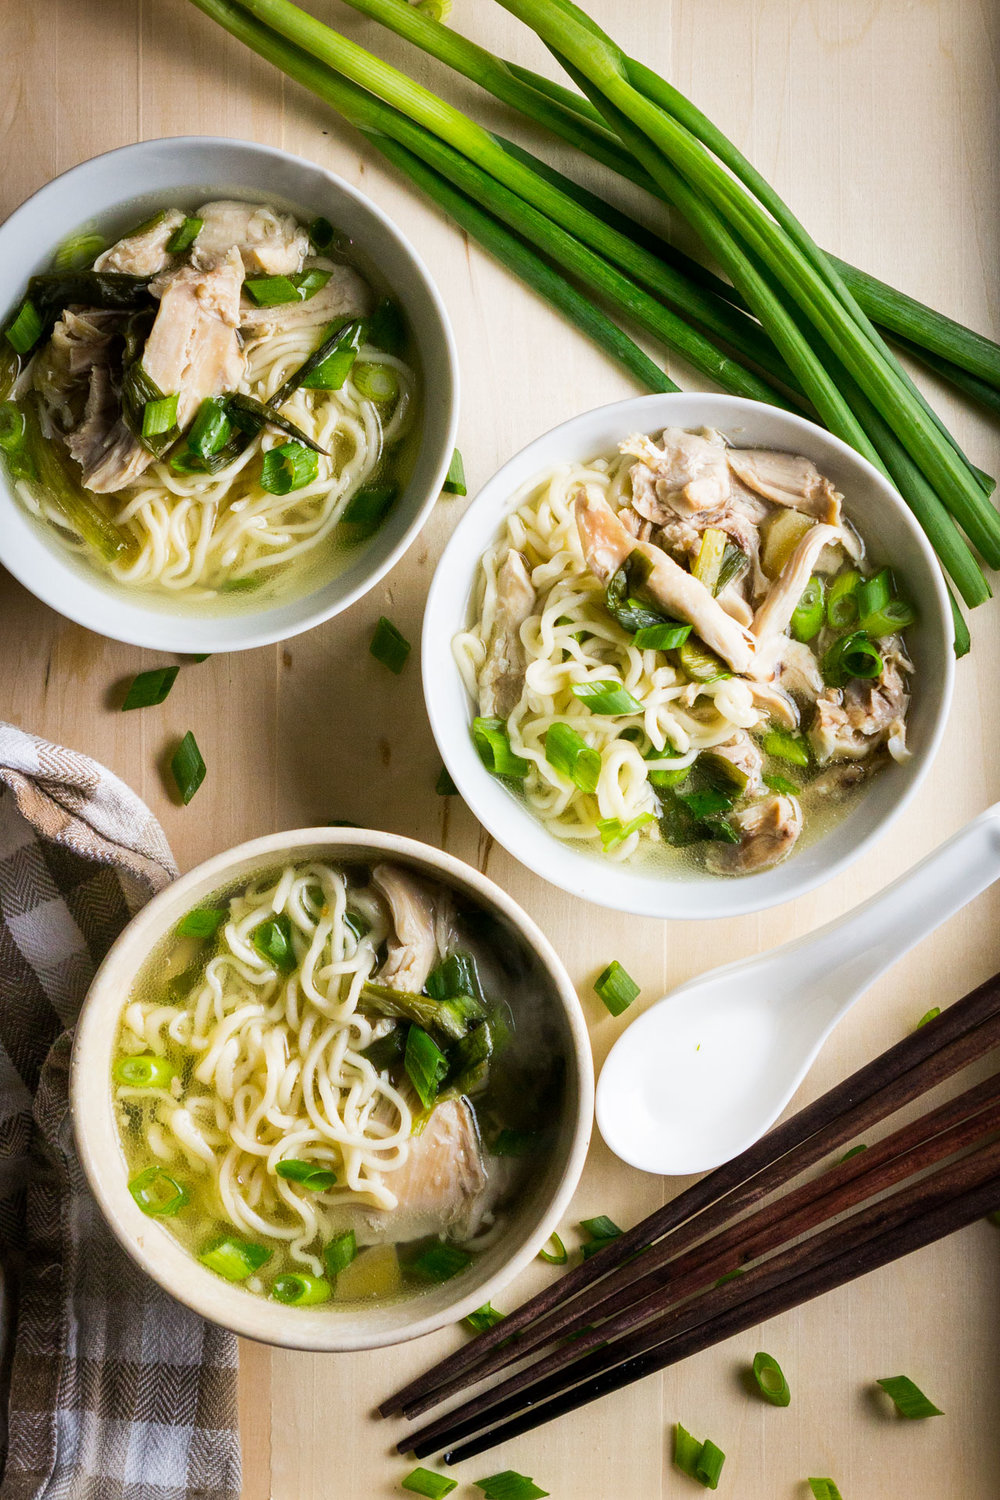 scallion-ginger-chicken-soup-with-noodles-6.jpg